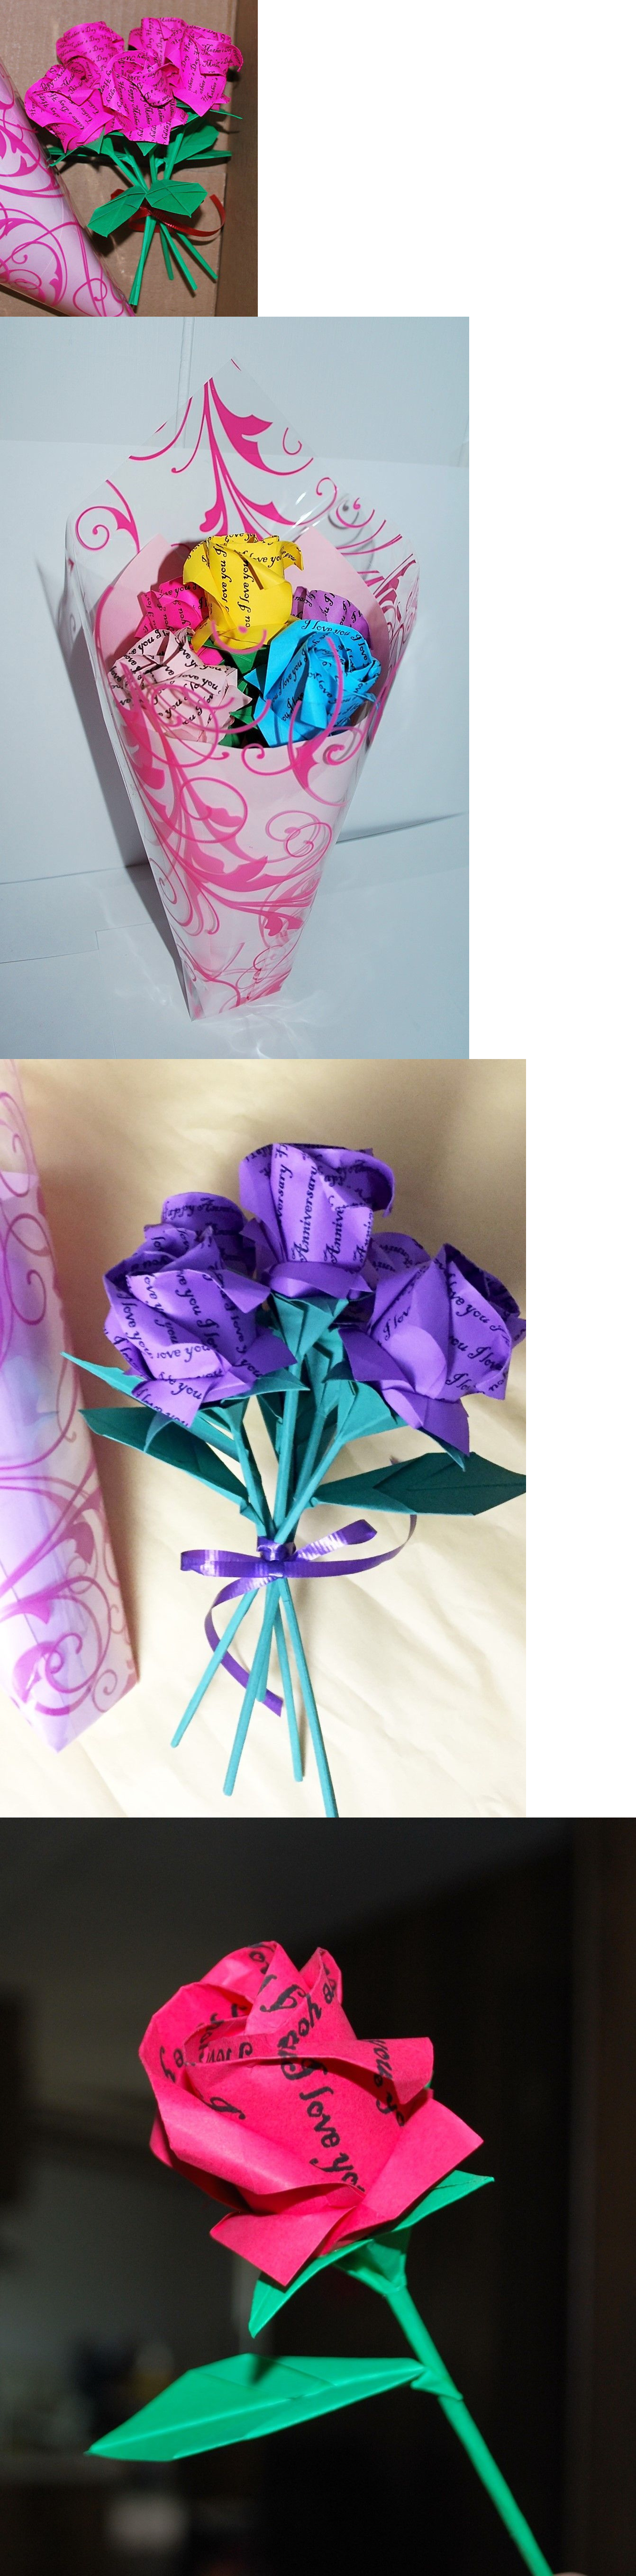 Origami 134596 5 Origami Wording Roses Paper Flower Bouquet